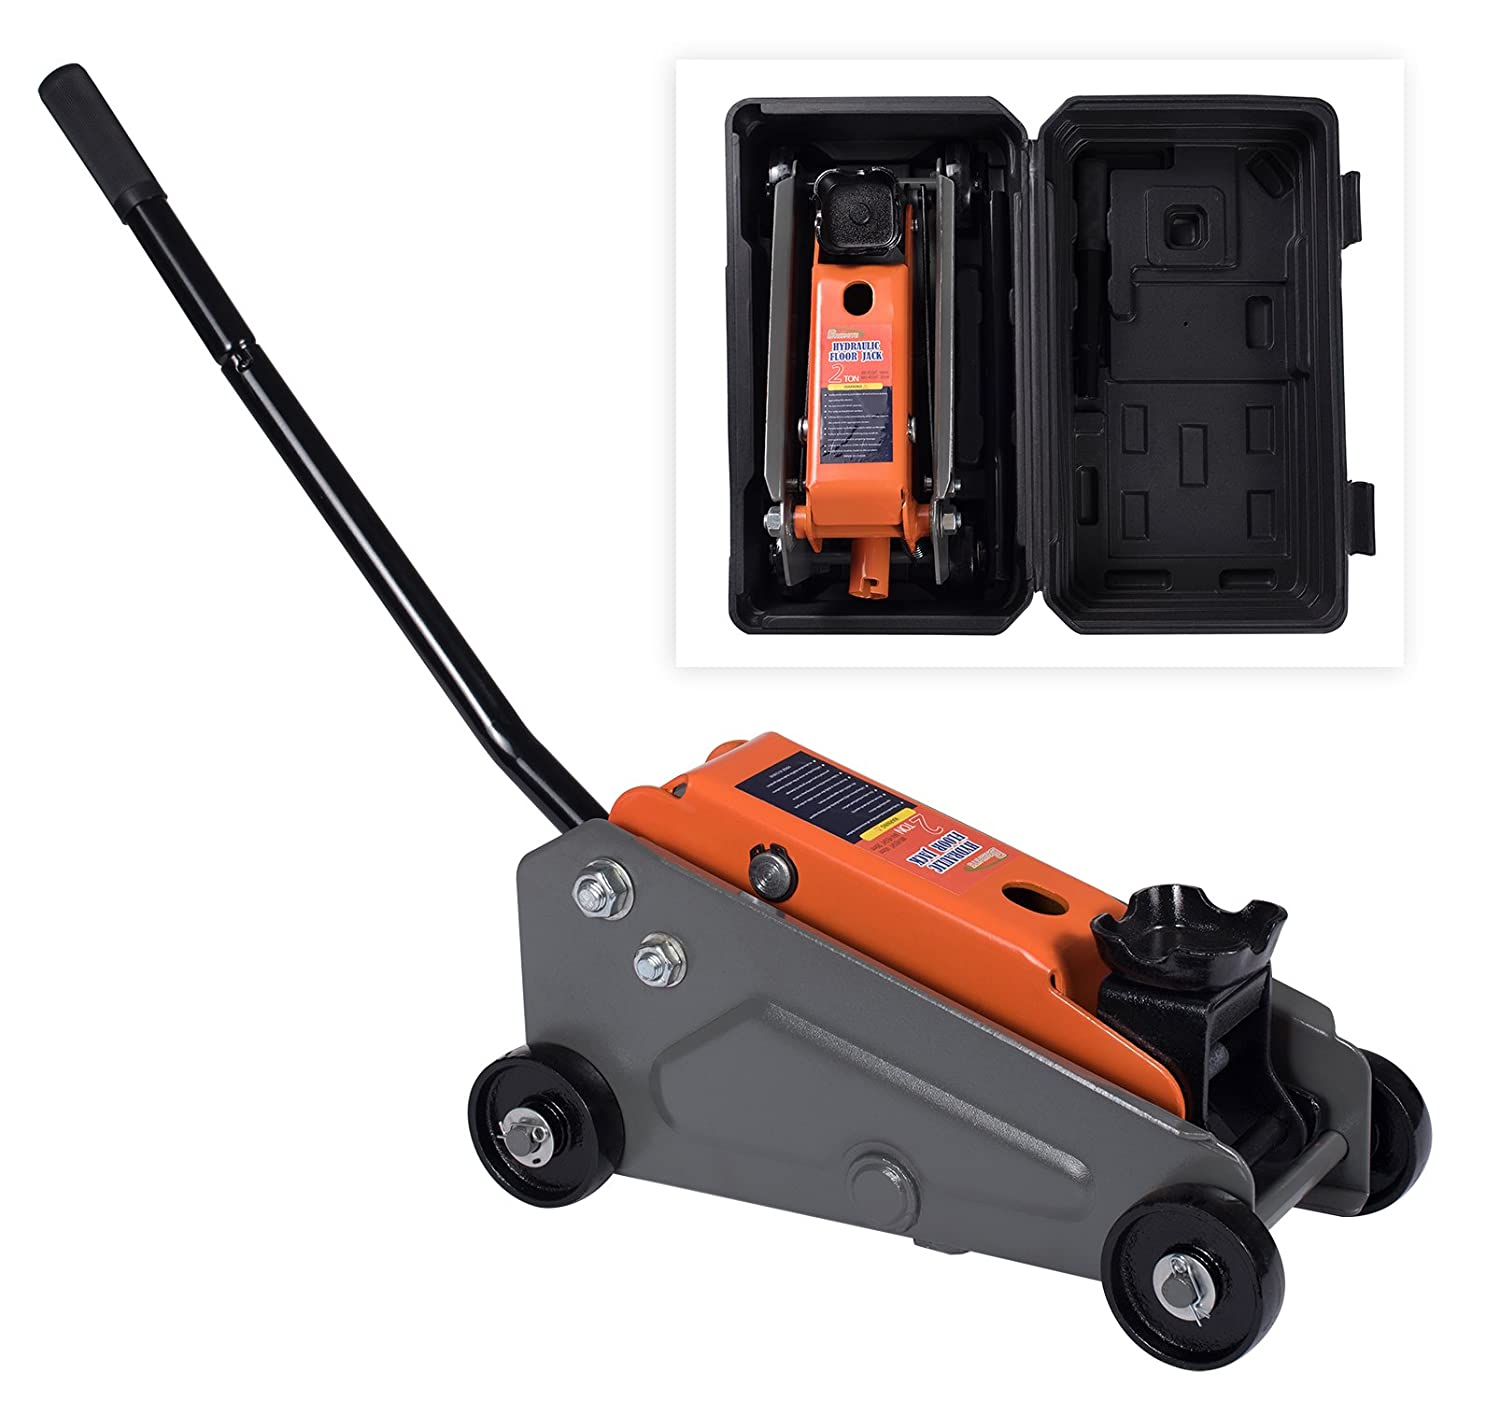 BAISHITE Hydraulic 2 Tons Capacity Floor Jack with Portable Blow Mold Case